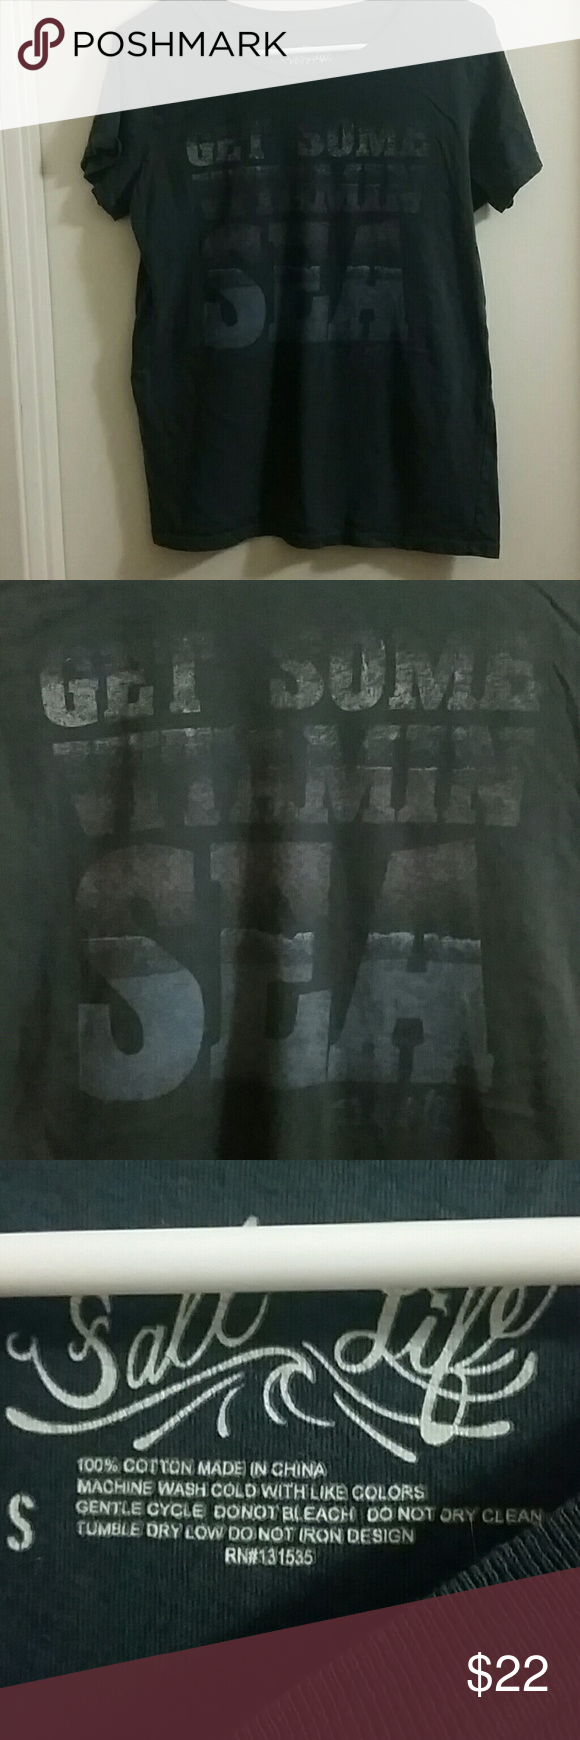 """Salt life vitamin sea tshirt Bought brand new at christmas time online. It is a really big fit for a small, baggy fit. Writing on the front says """"Get Some Vitamin Sea"""". Writing has a faded look to it, that's how it came, didn't look like the picture online. I washed it once to see if it would at least shrink alittle but it did not. Salt life Tops Tees - Short Sleeve"""